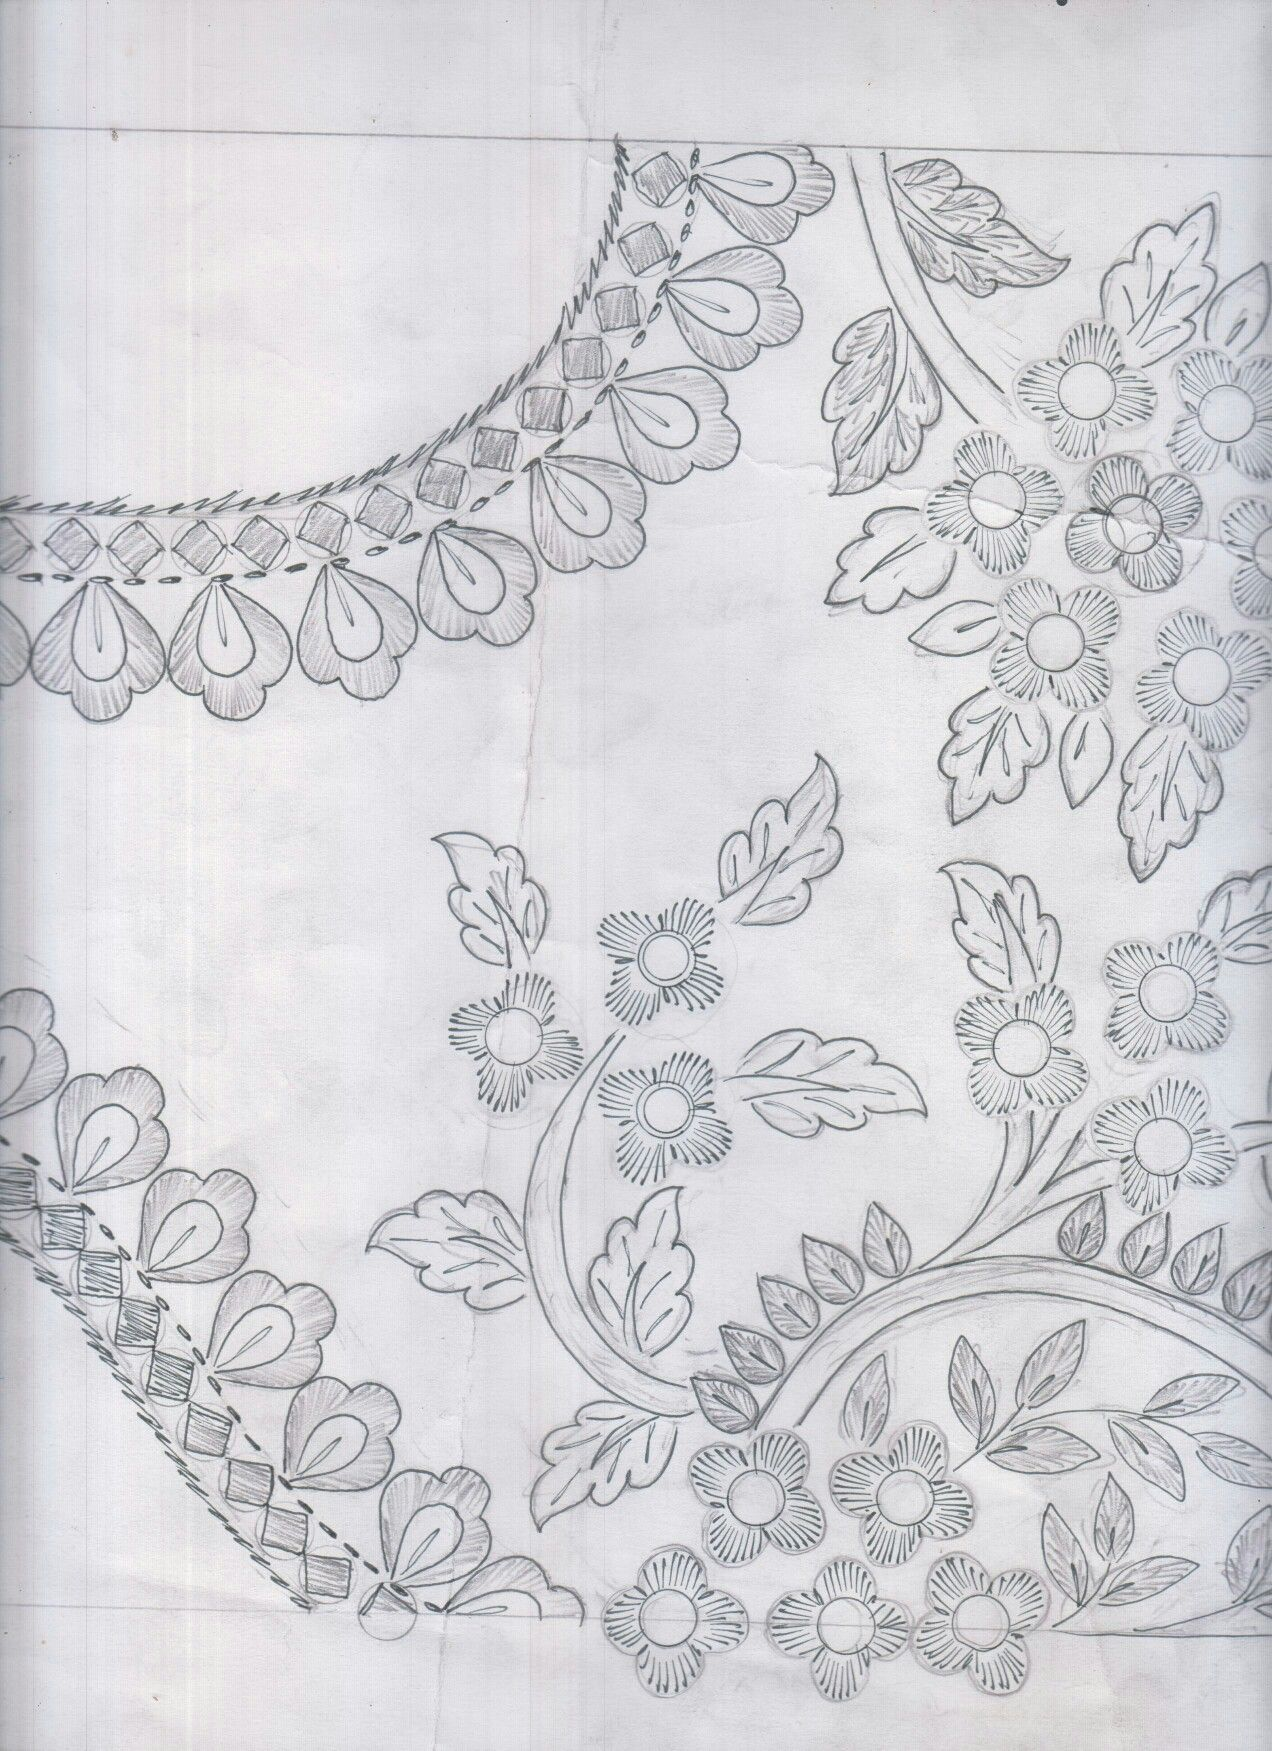 Floral Designs, Embroidery